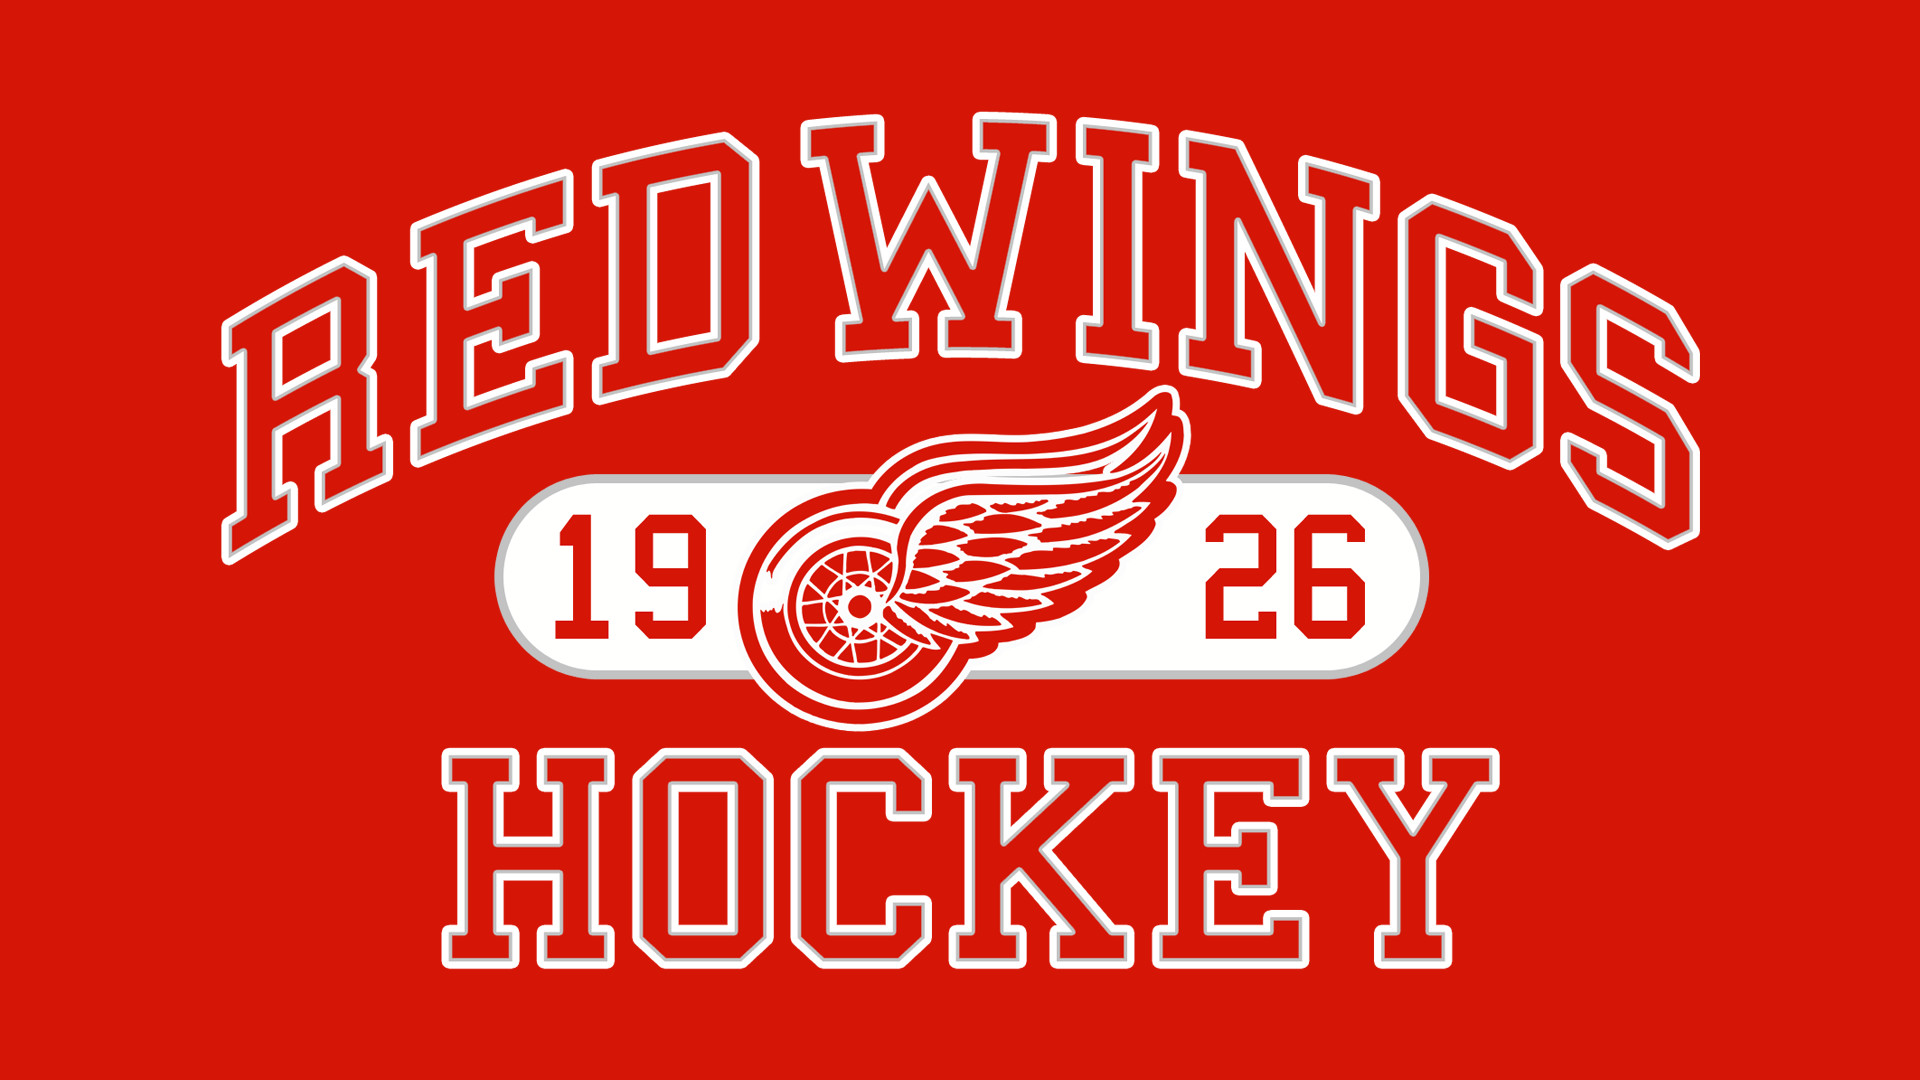 1920x1080 Detroit red wings wallpaper (2)